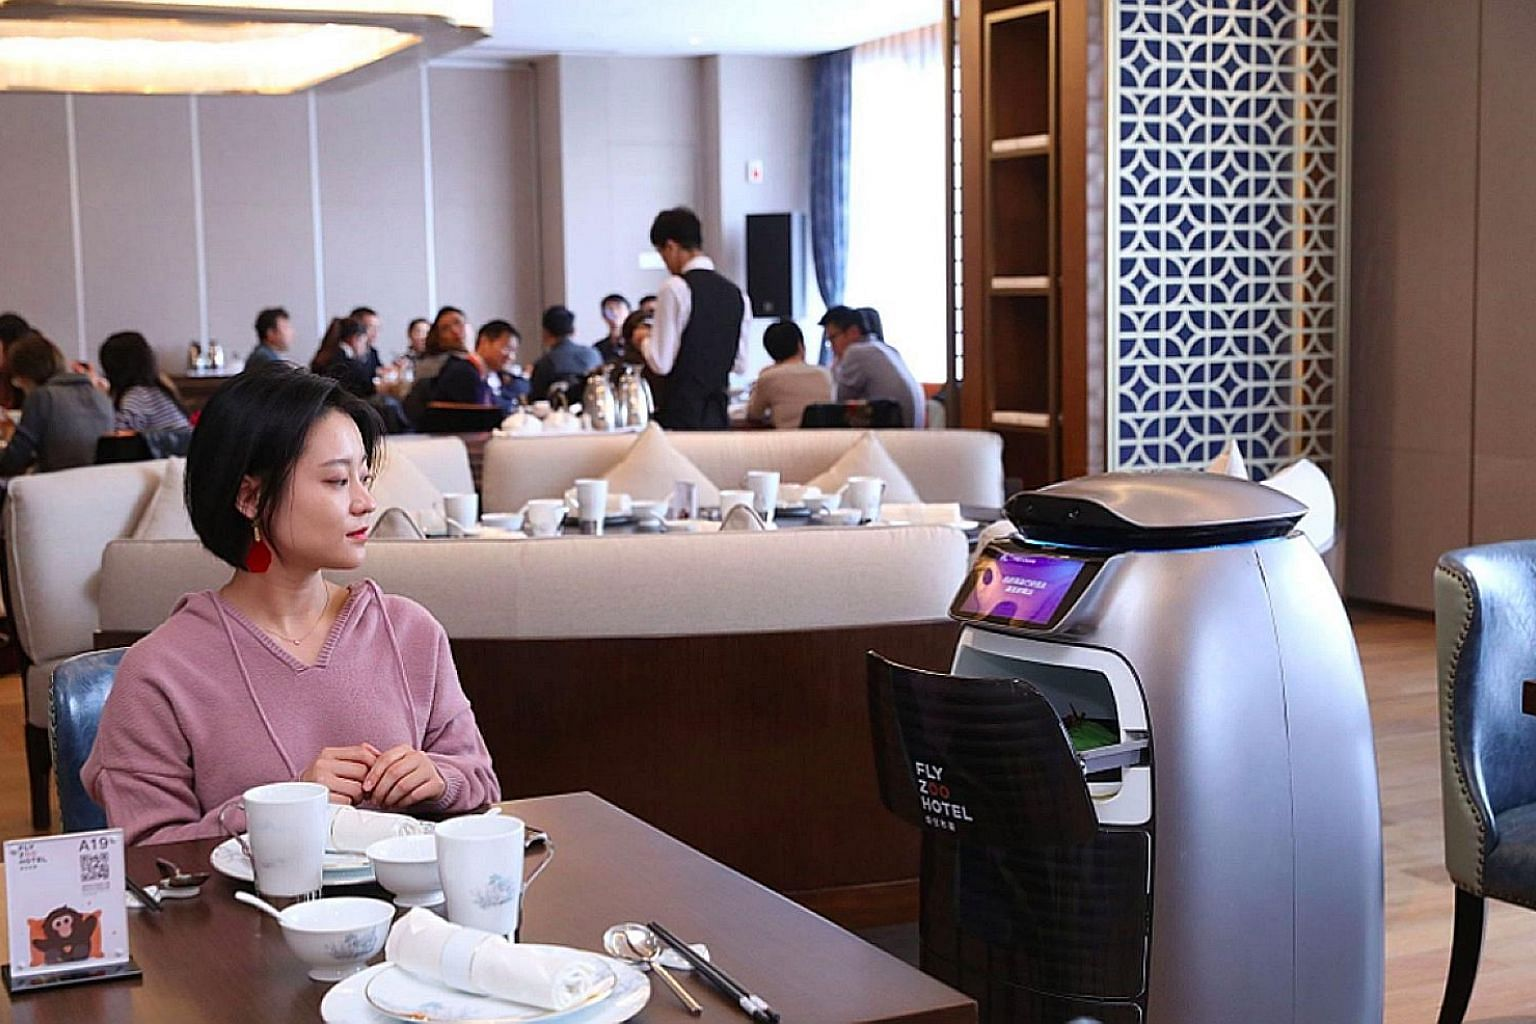 A diner being served by a robot in a restaurant at the FlyZoo Hotel in Hangzhou, China.